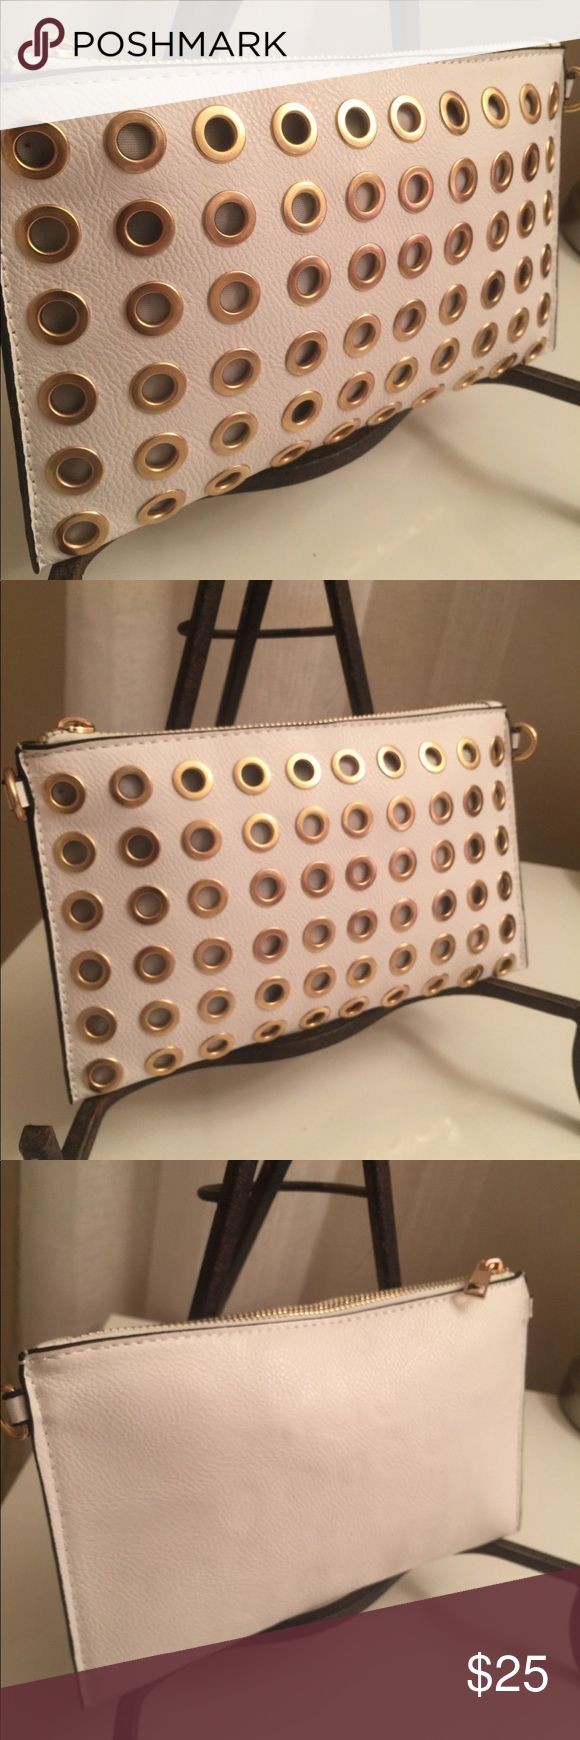 White & Gold Clutch Brand new! Comes with removable gold chain & matching wristlet strap Bags Clutches & Wristlets